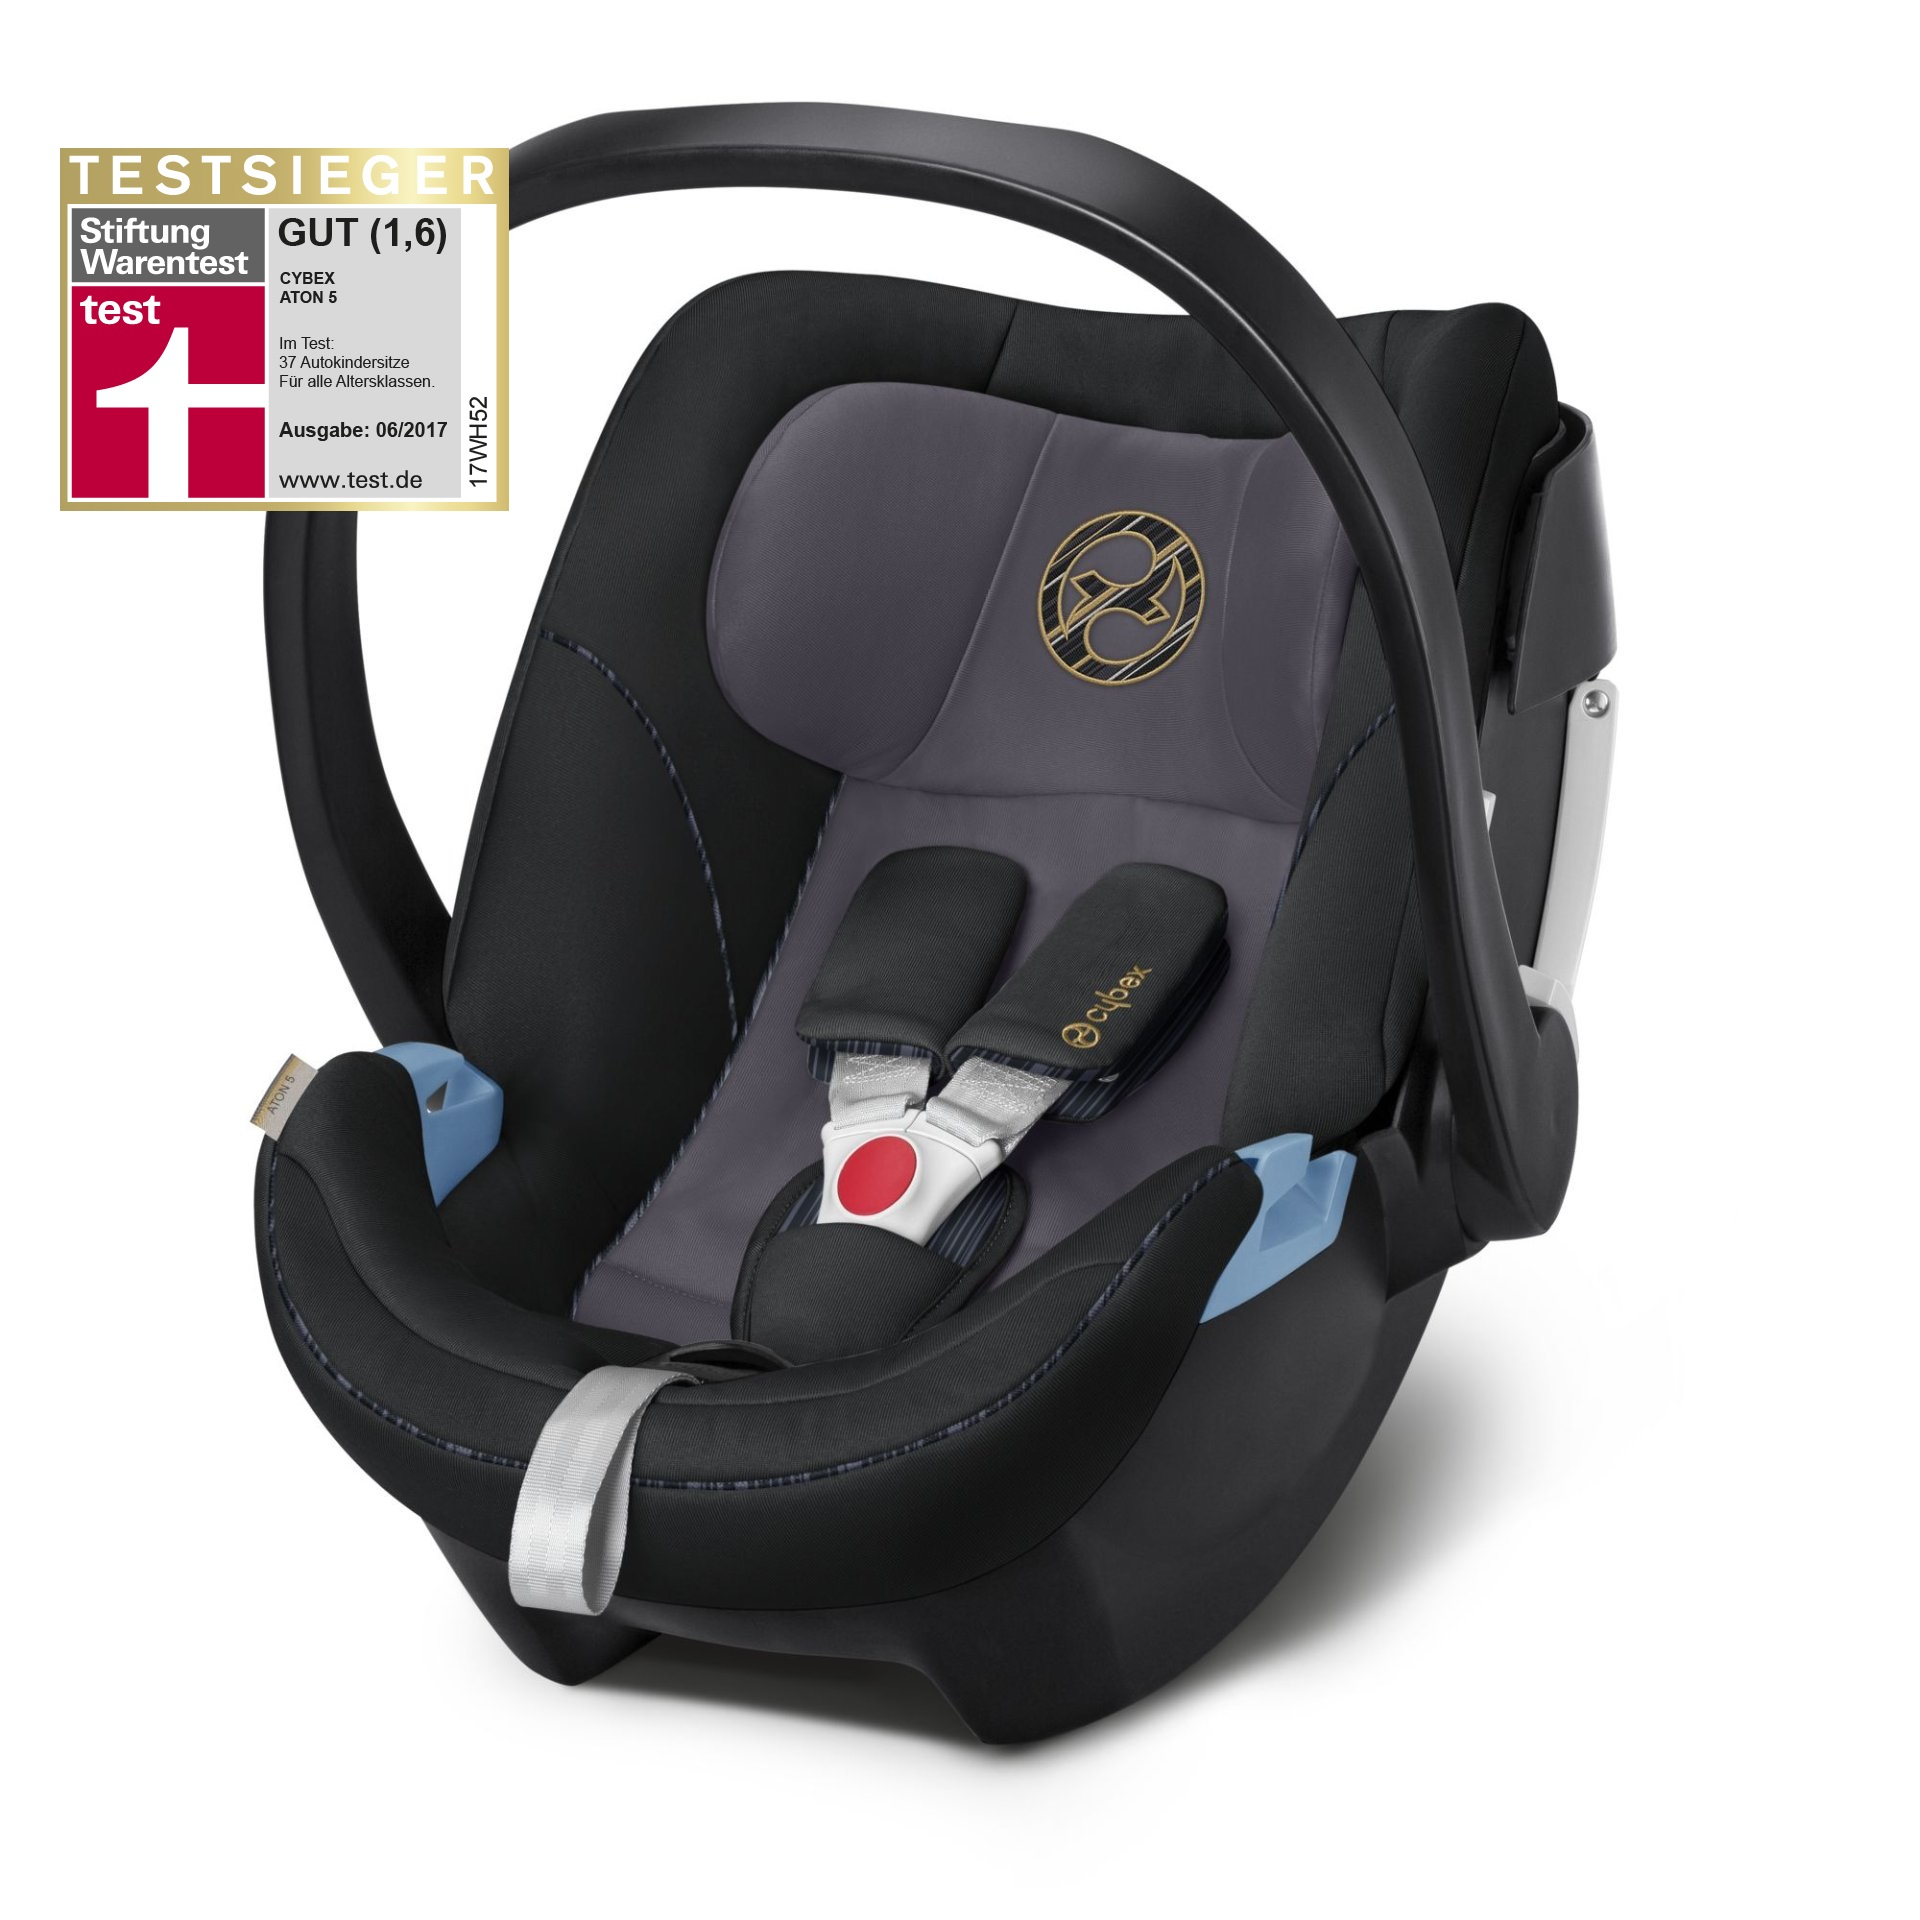 cybex infant car seat aton 5 2019 premium black black. Black Bedroom Furniture Sets. Home Design Ideas